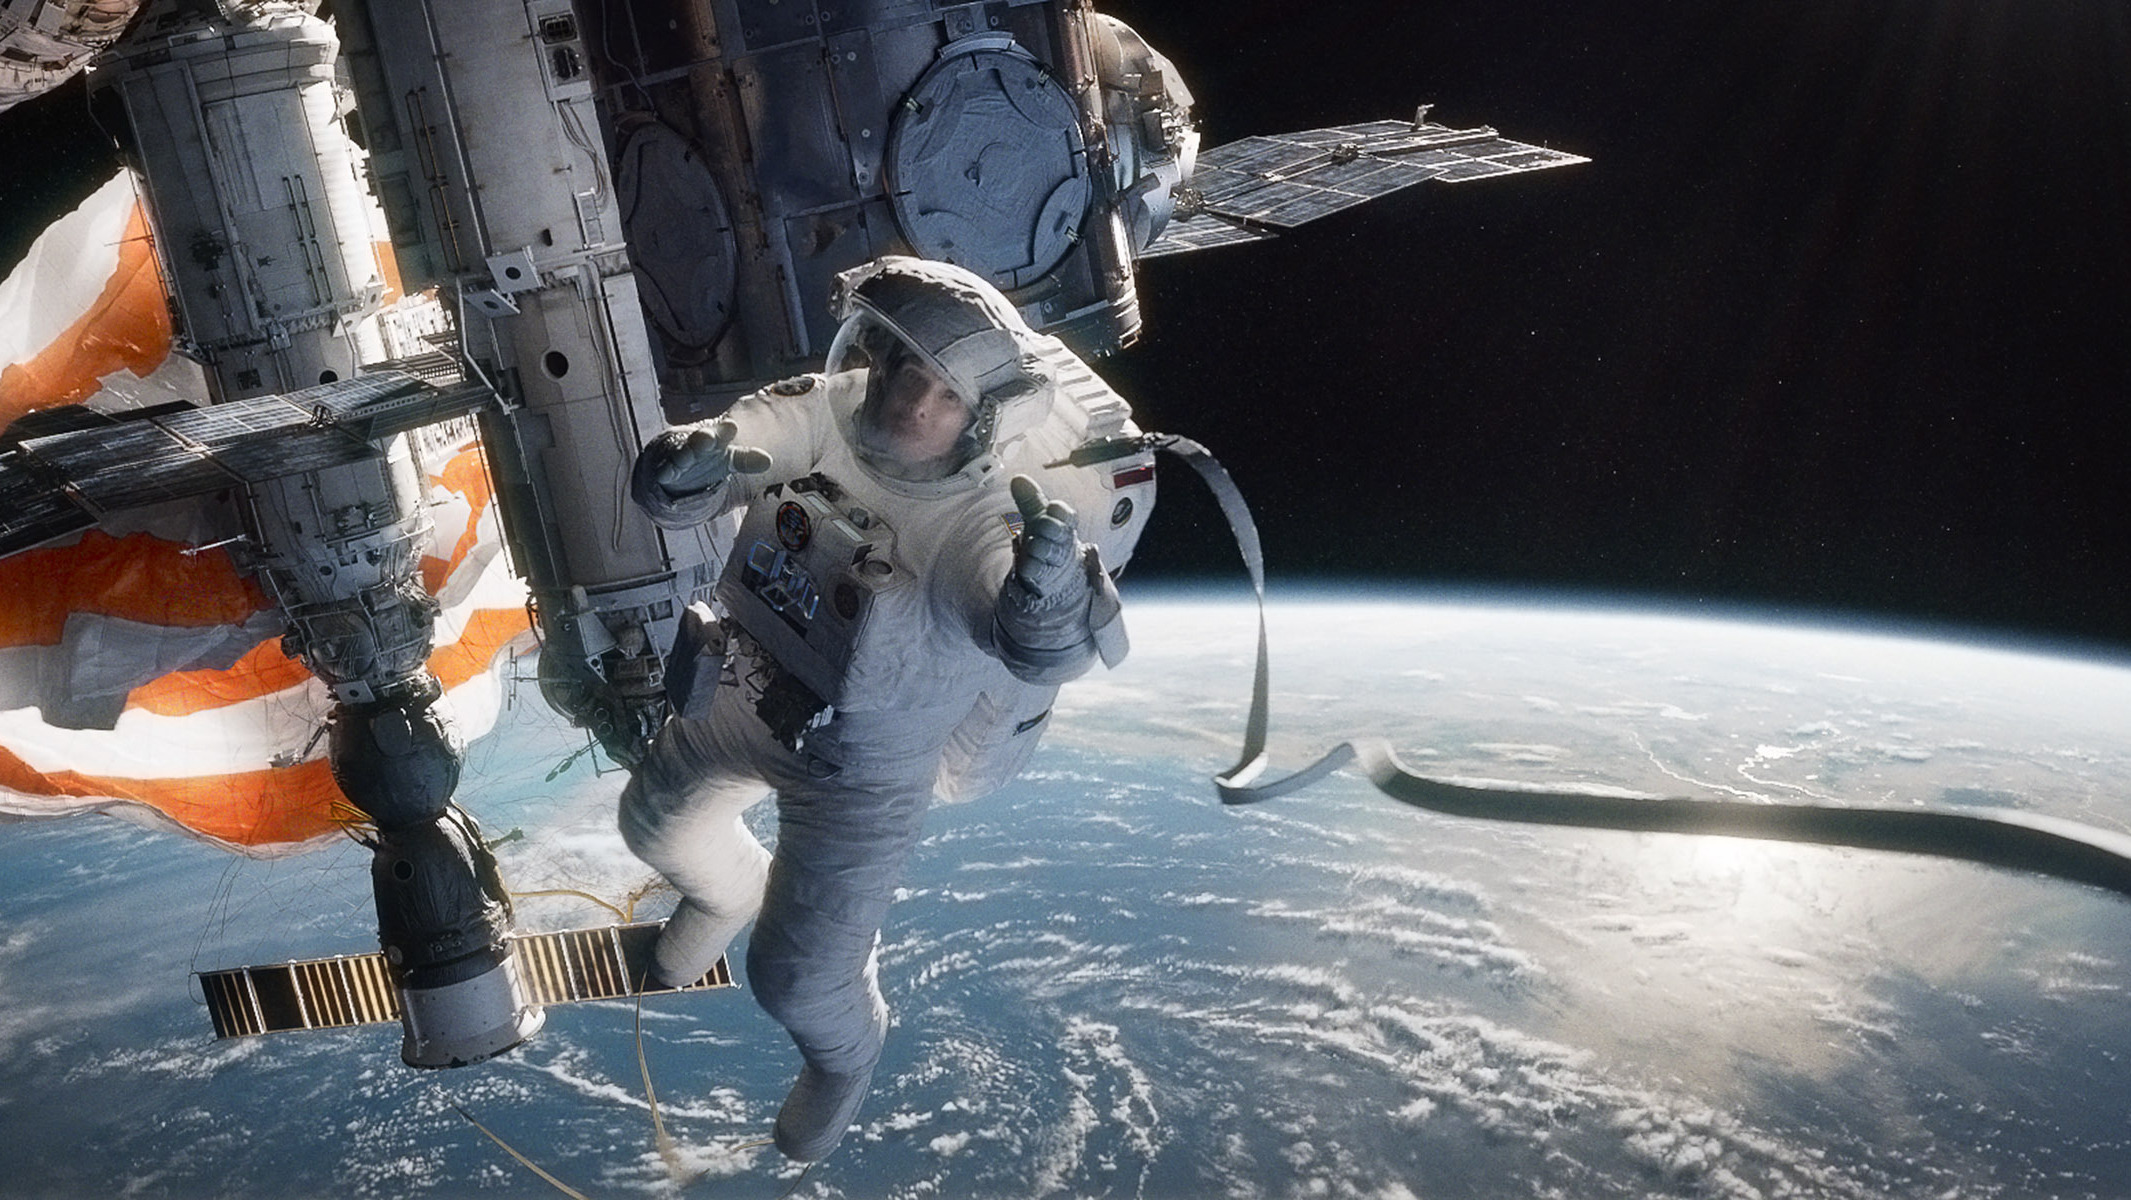 NASA Studies Changes In Astronaut Brain When In Zero Gravity